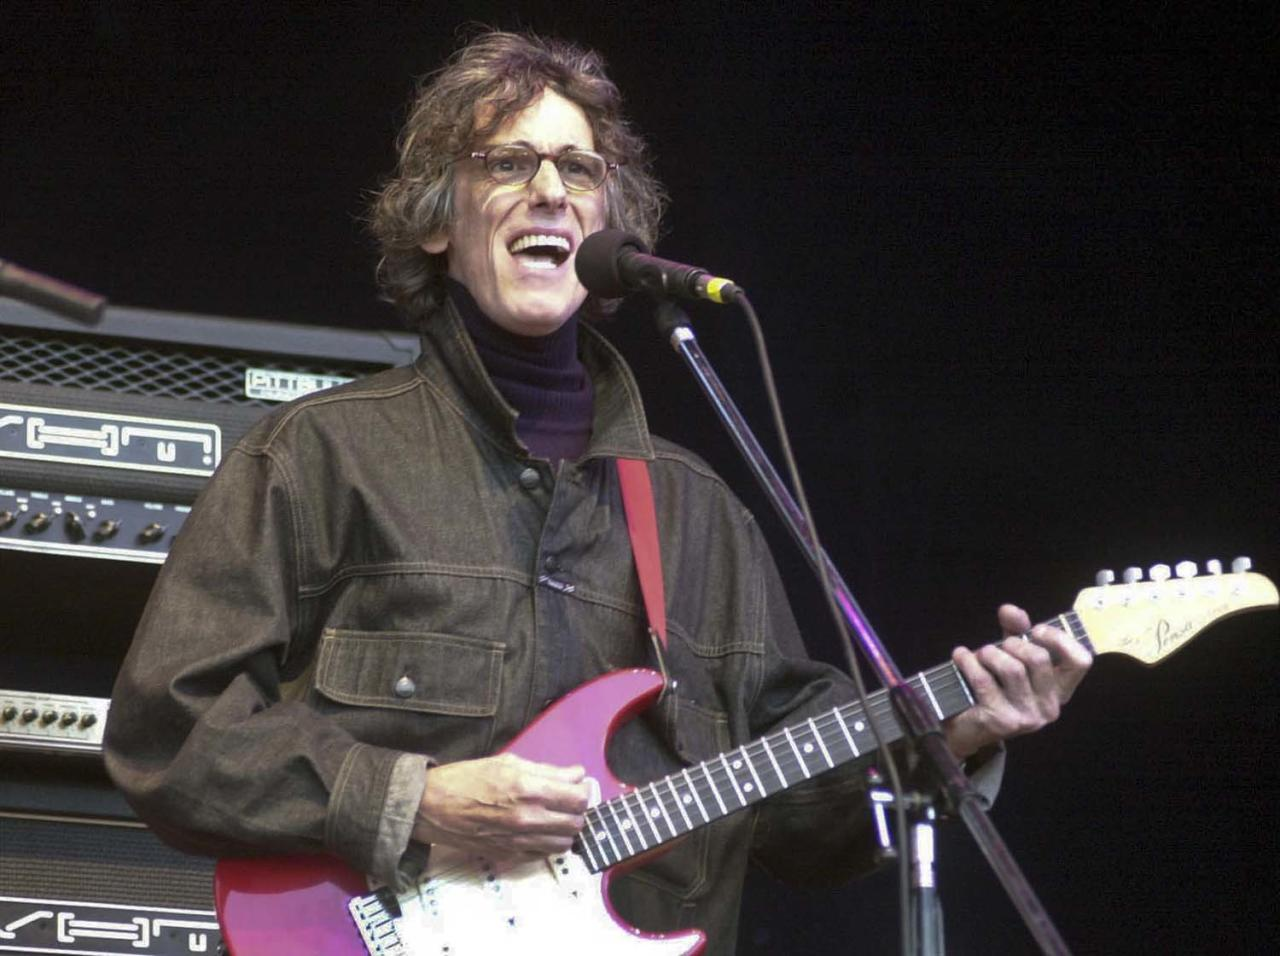 In this photo taken 2007, musician Luis Alberto Spinetta, from Argentina, performs during a concert in Cordoba, Argentina. Spinetta died in Buenos Aires, Argentina on Wednesday, Feb. 8, 2012.  (AP Photo/Irma Montiel, Telam)